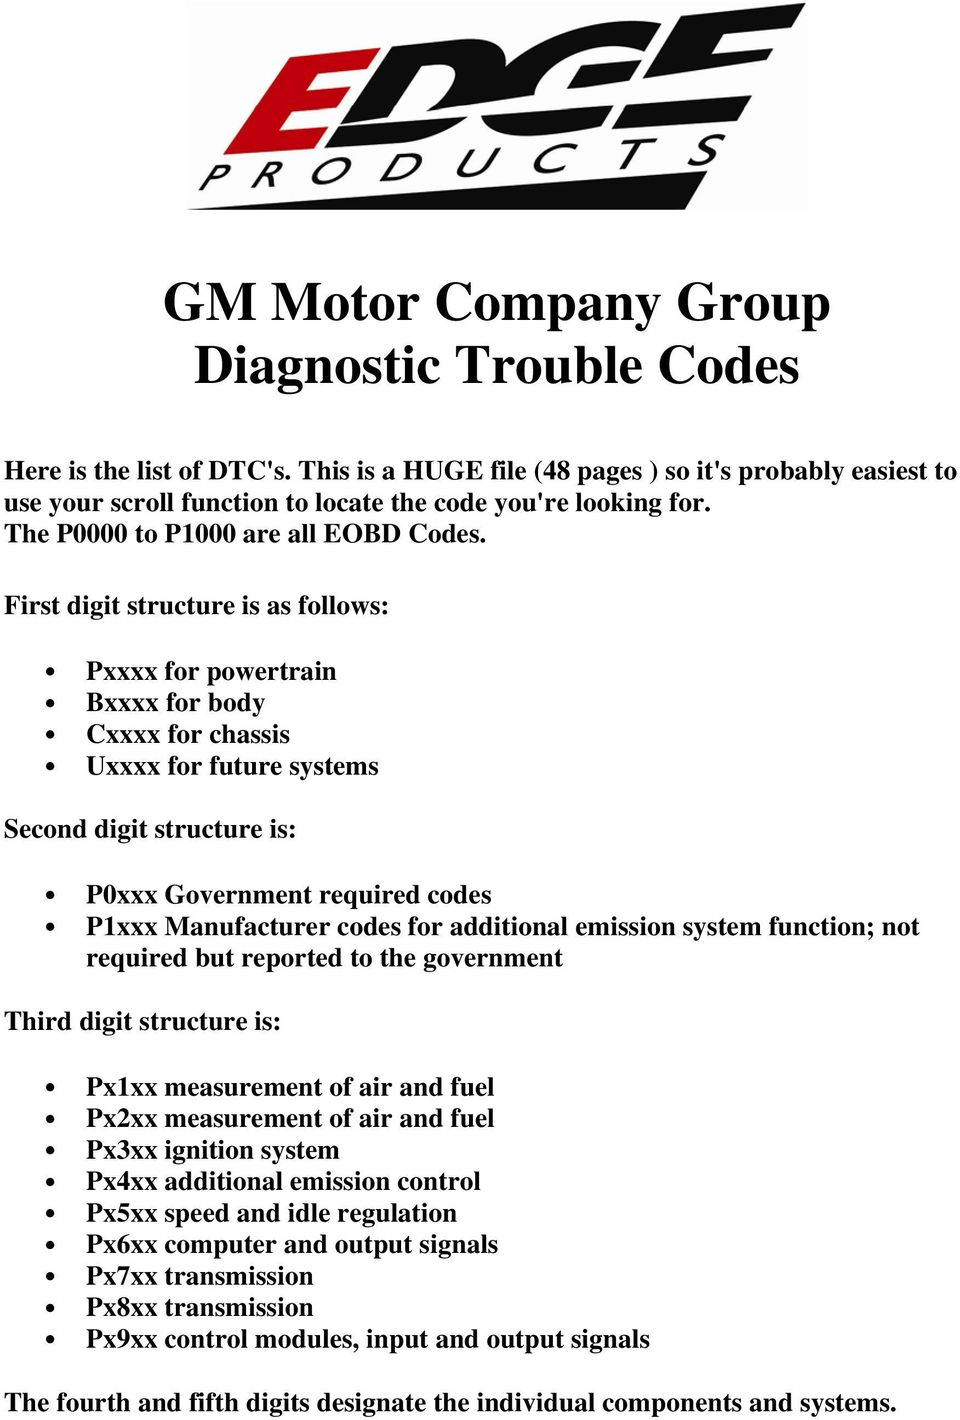 GM Motor Company Group Diagnostic Trouble Codes - PDF